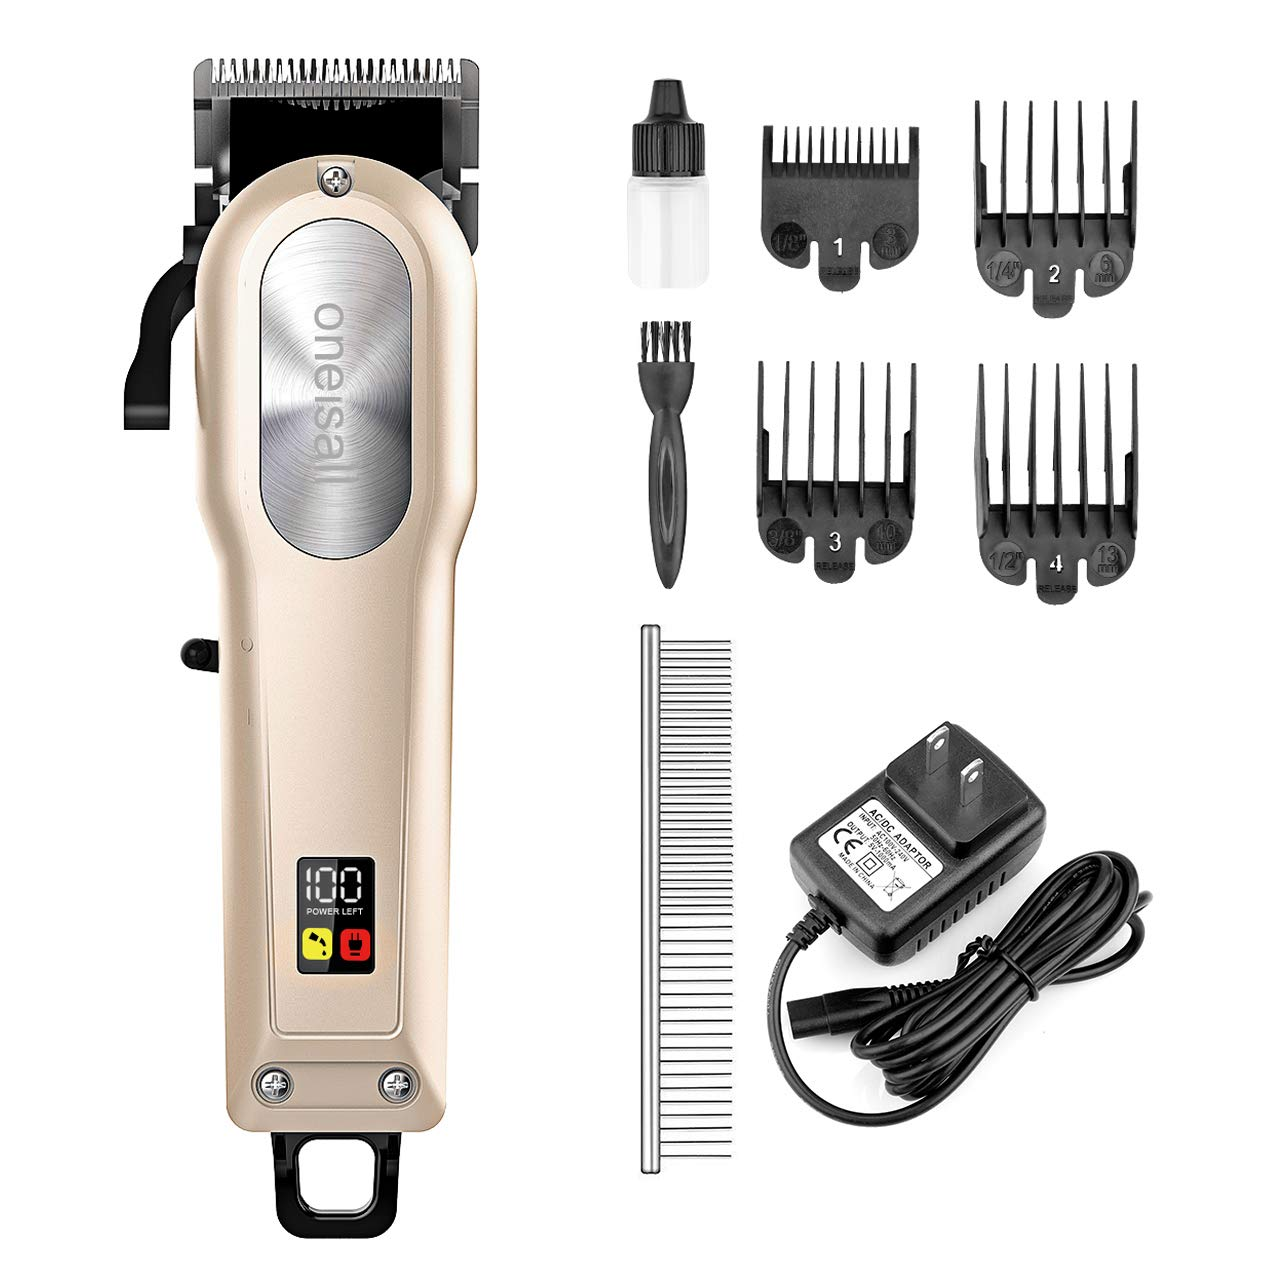 oneisall Dog Grooming Clippers,Professional Rechargeable Hair Clipper Heavy Duty Shaver Low Noise Pet Grooming Kits,Suitable for Dogs,Cats and Other Animals,Gold by oneisall